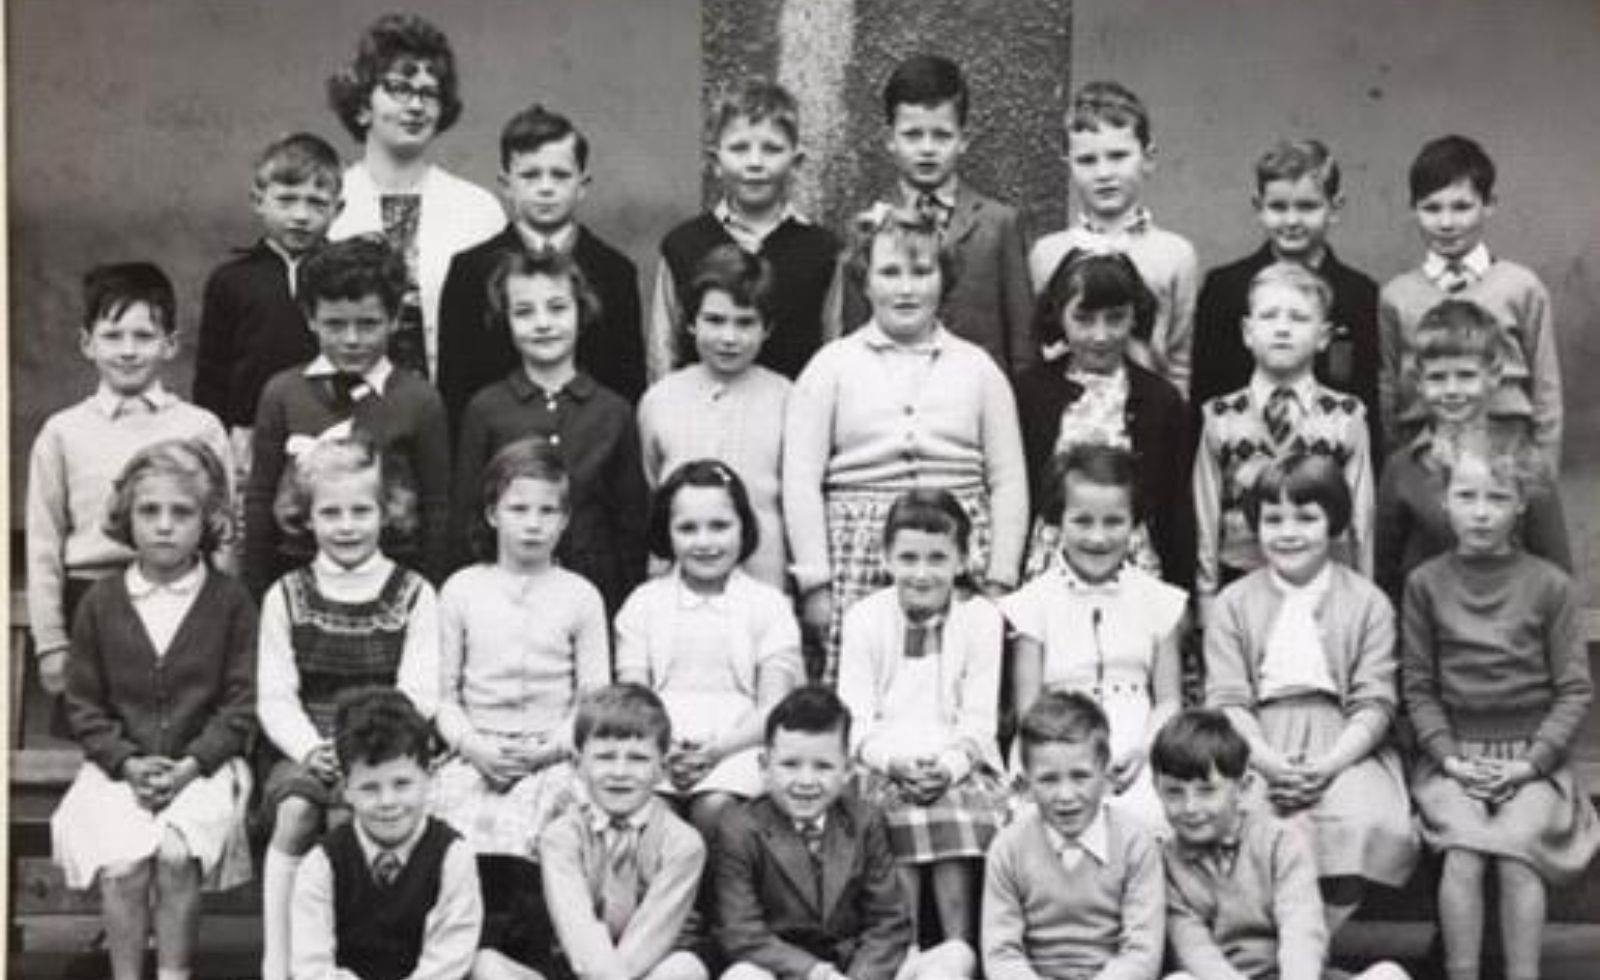 A class photograph from 1960